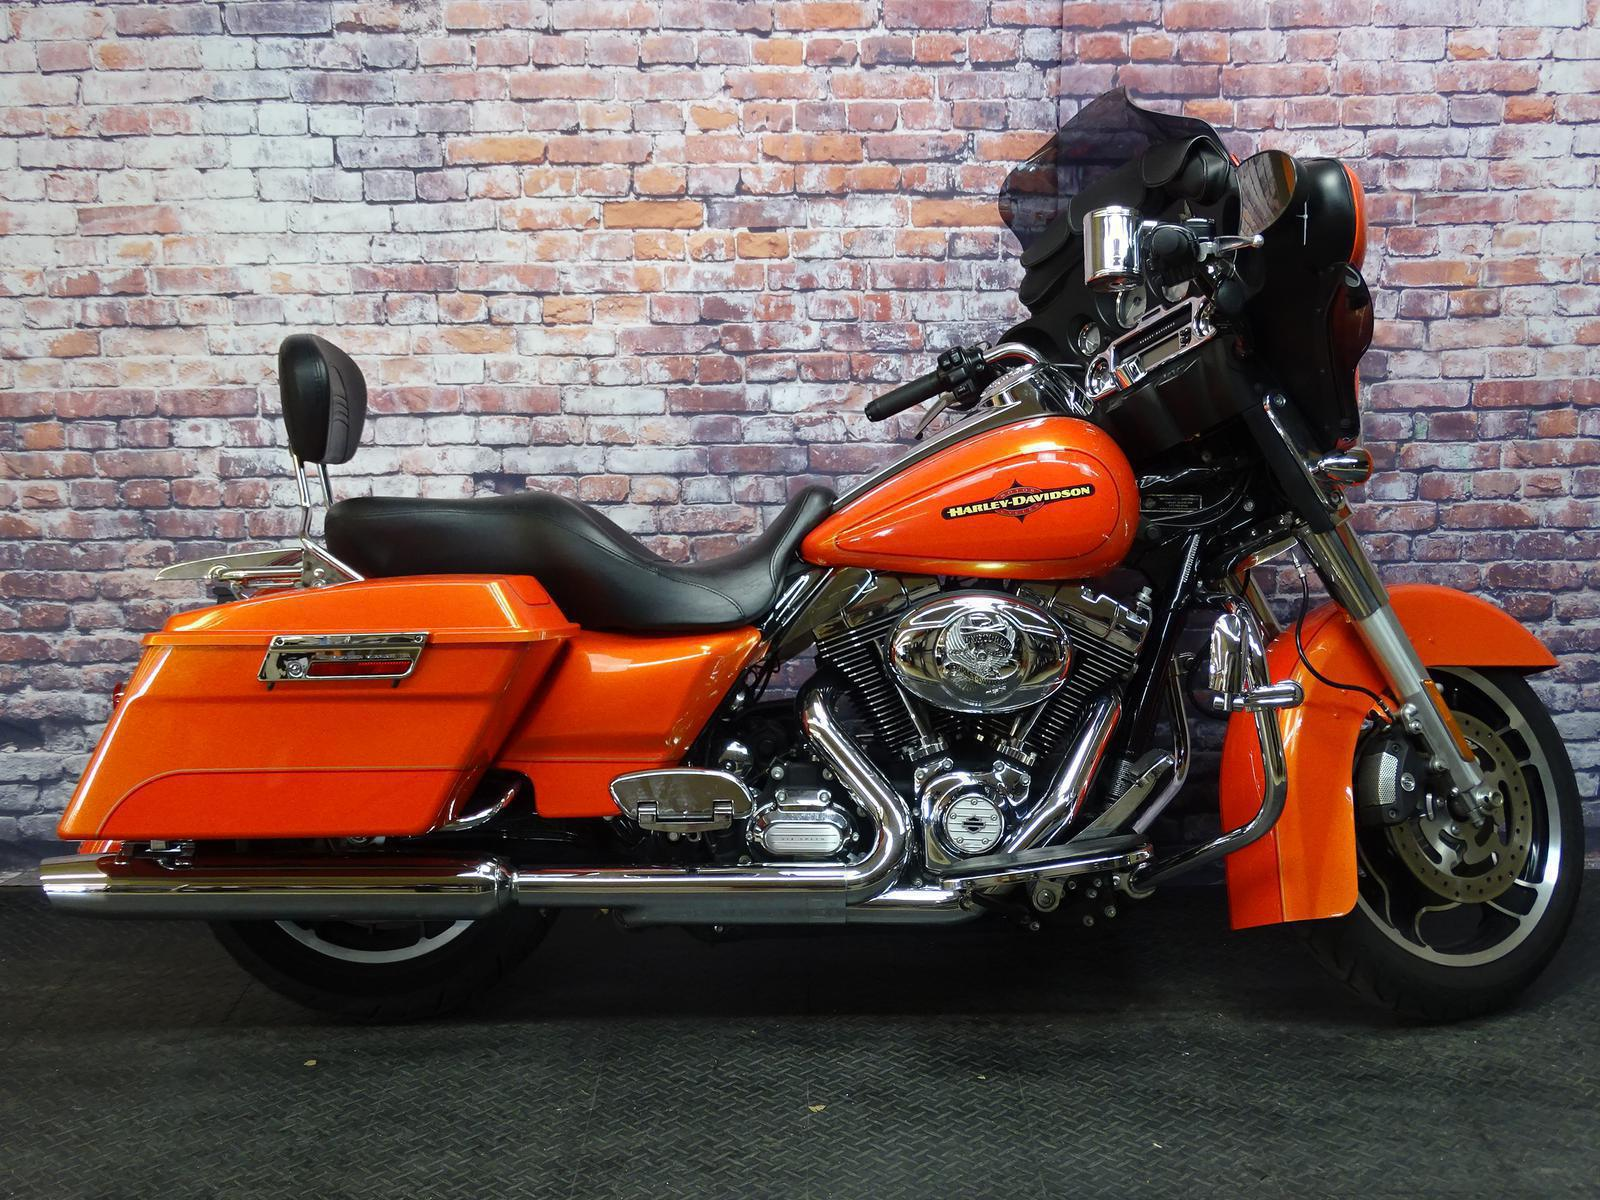 2012 Harley Davidson Flhx103 Street Glide For Sale In Manitowoc Red Call Price920 684 0237 Harbor Town